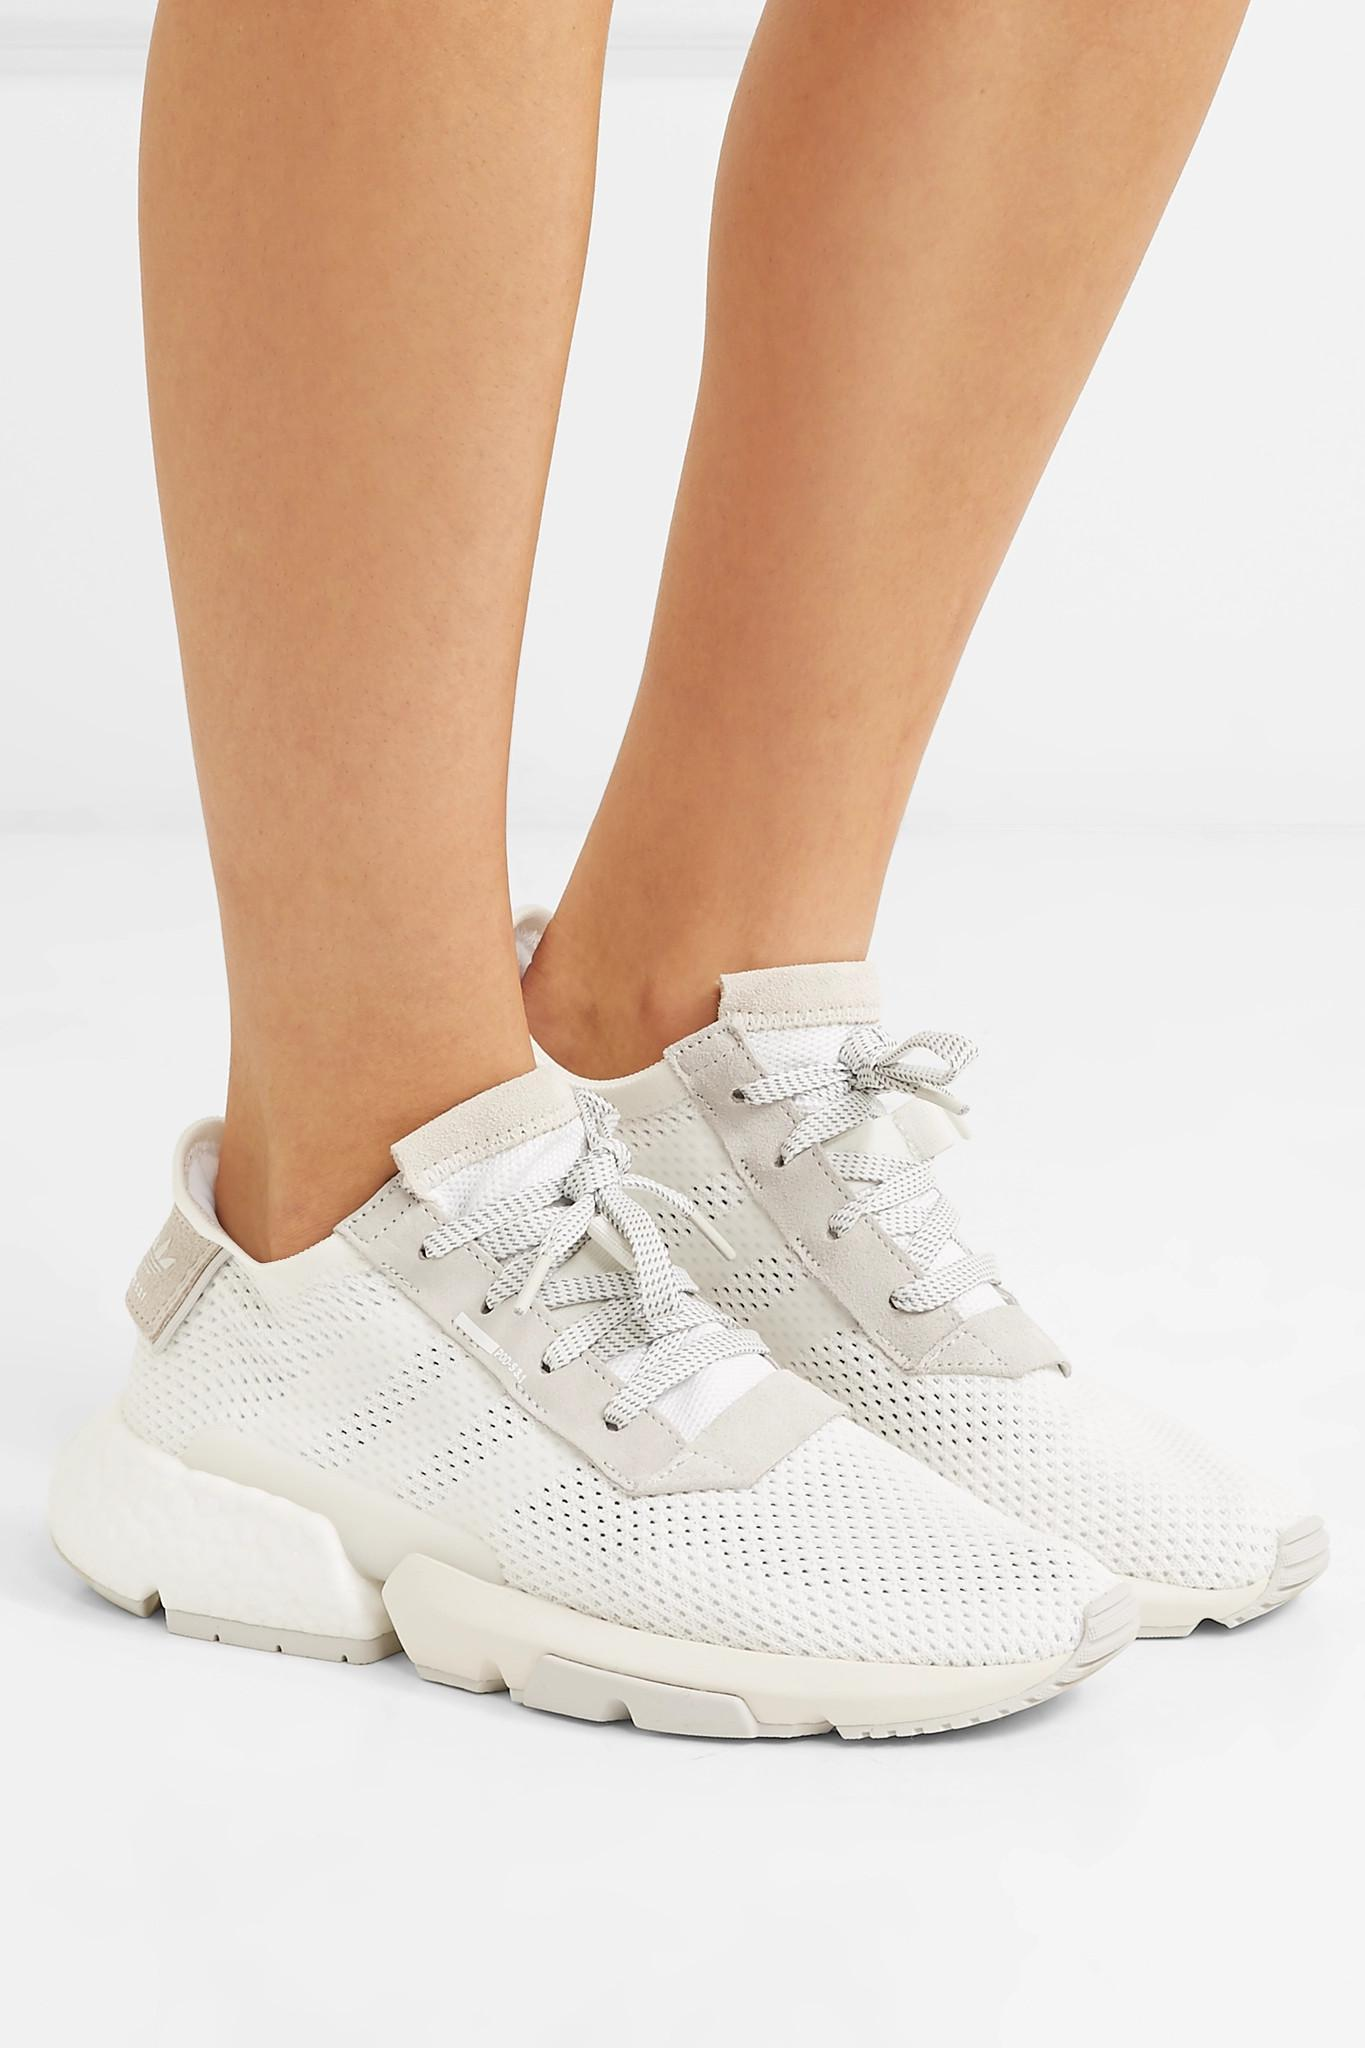 low priced e5800 c9529 Adidas Originals - White Pod-s3.1 Suede-trimmed Mesh Sneakers - Lyst. View  fullscreen